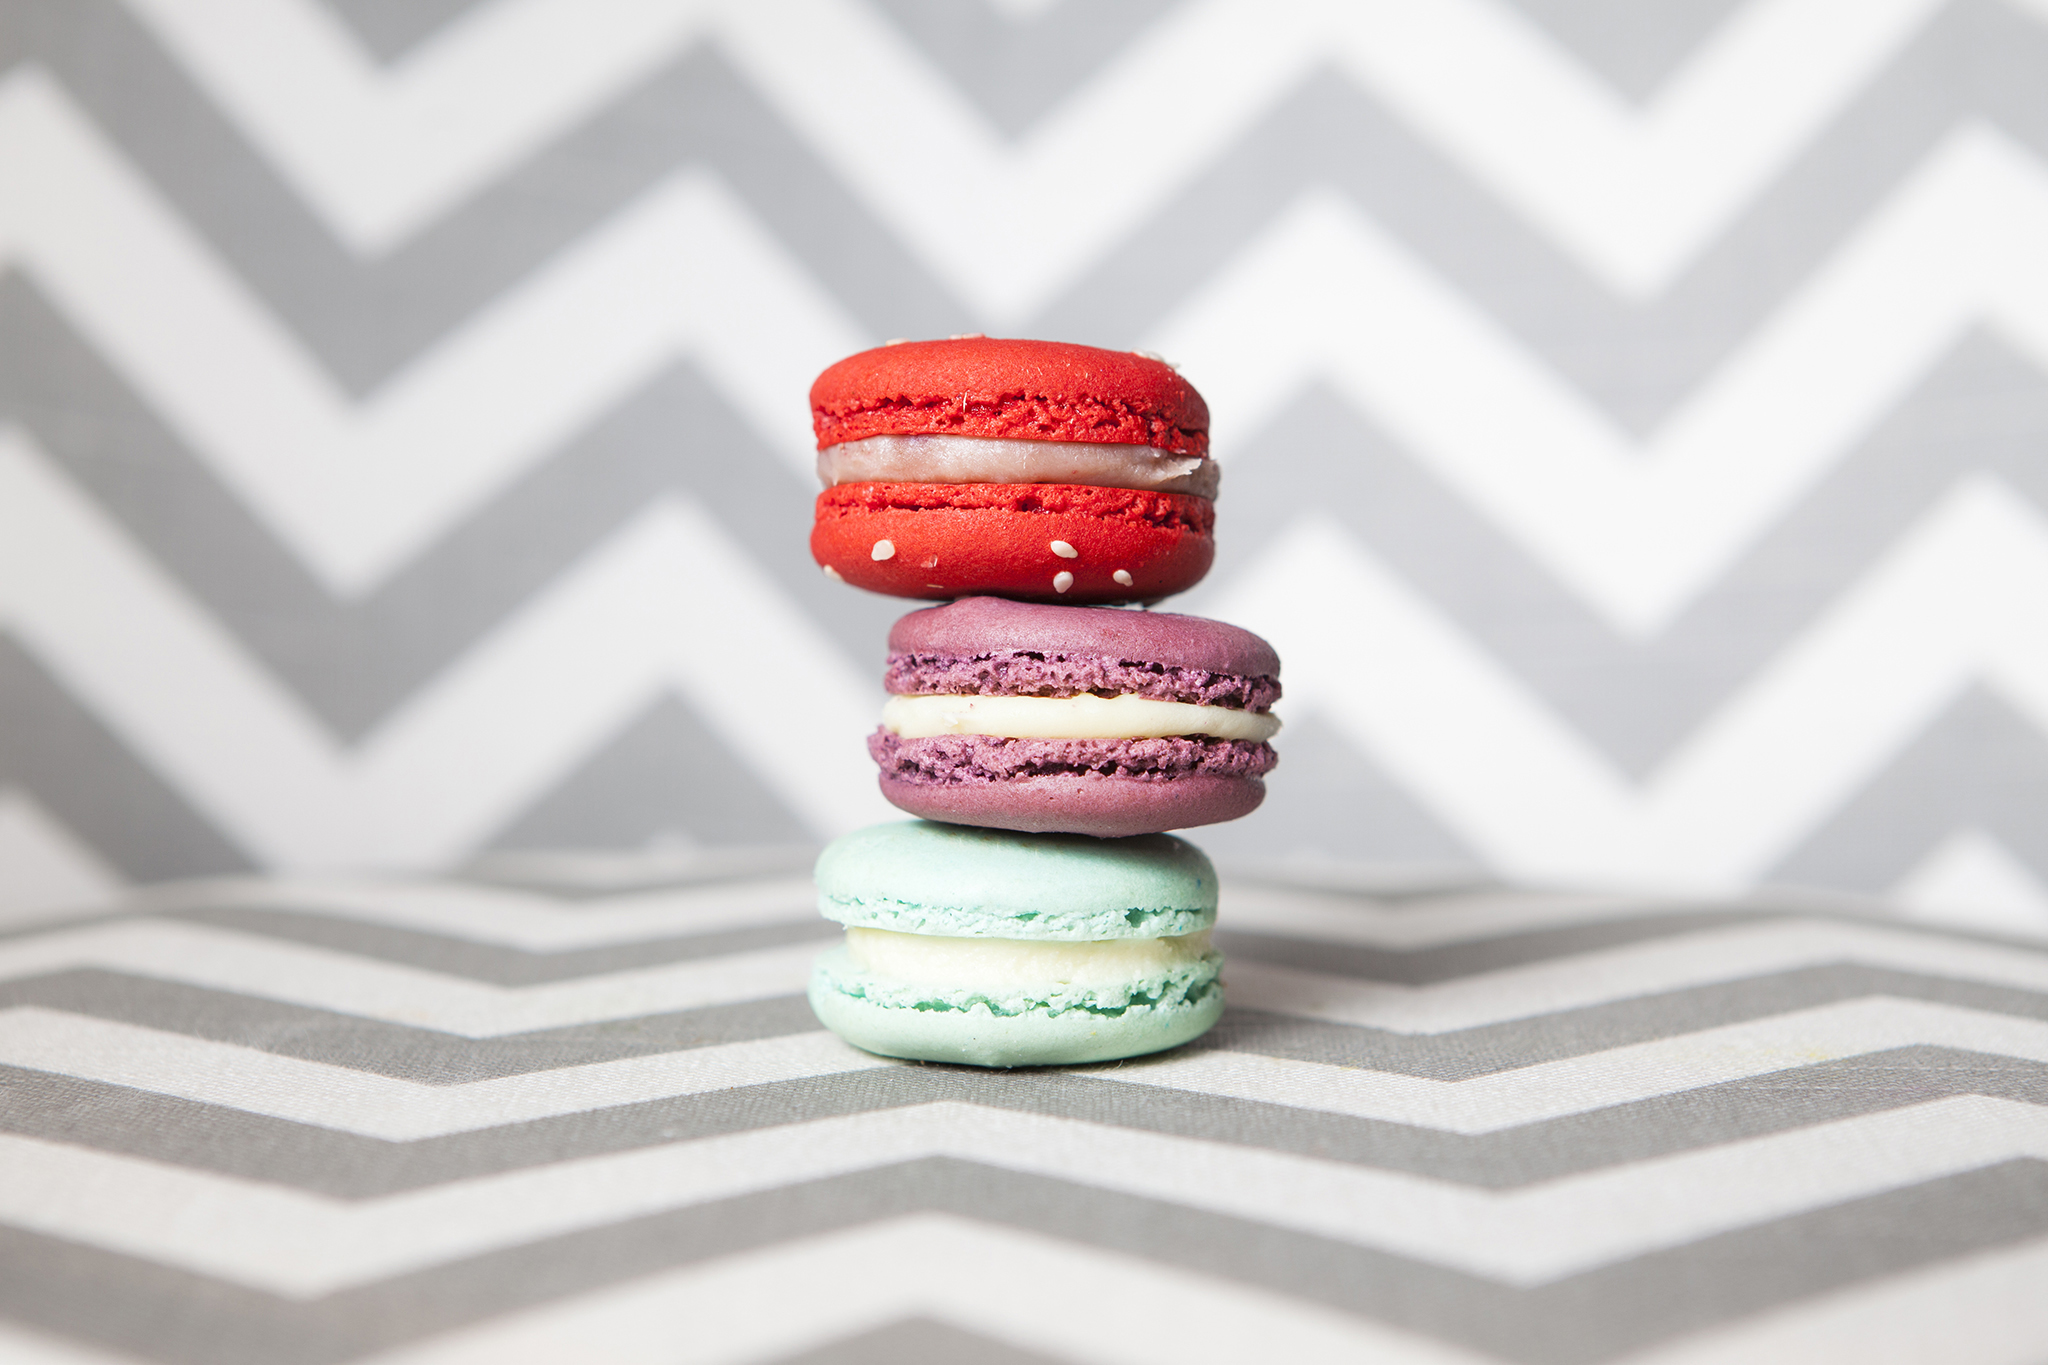 The best shops for French macarons